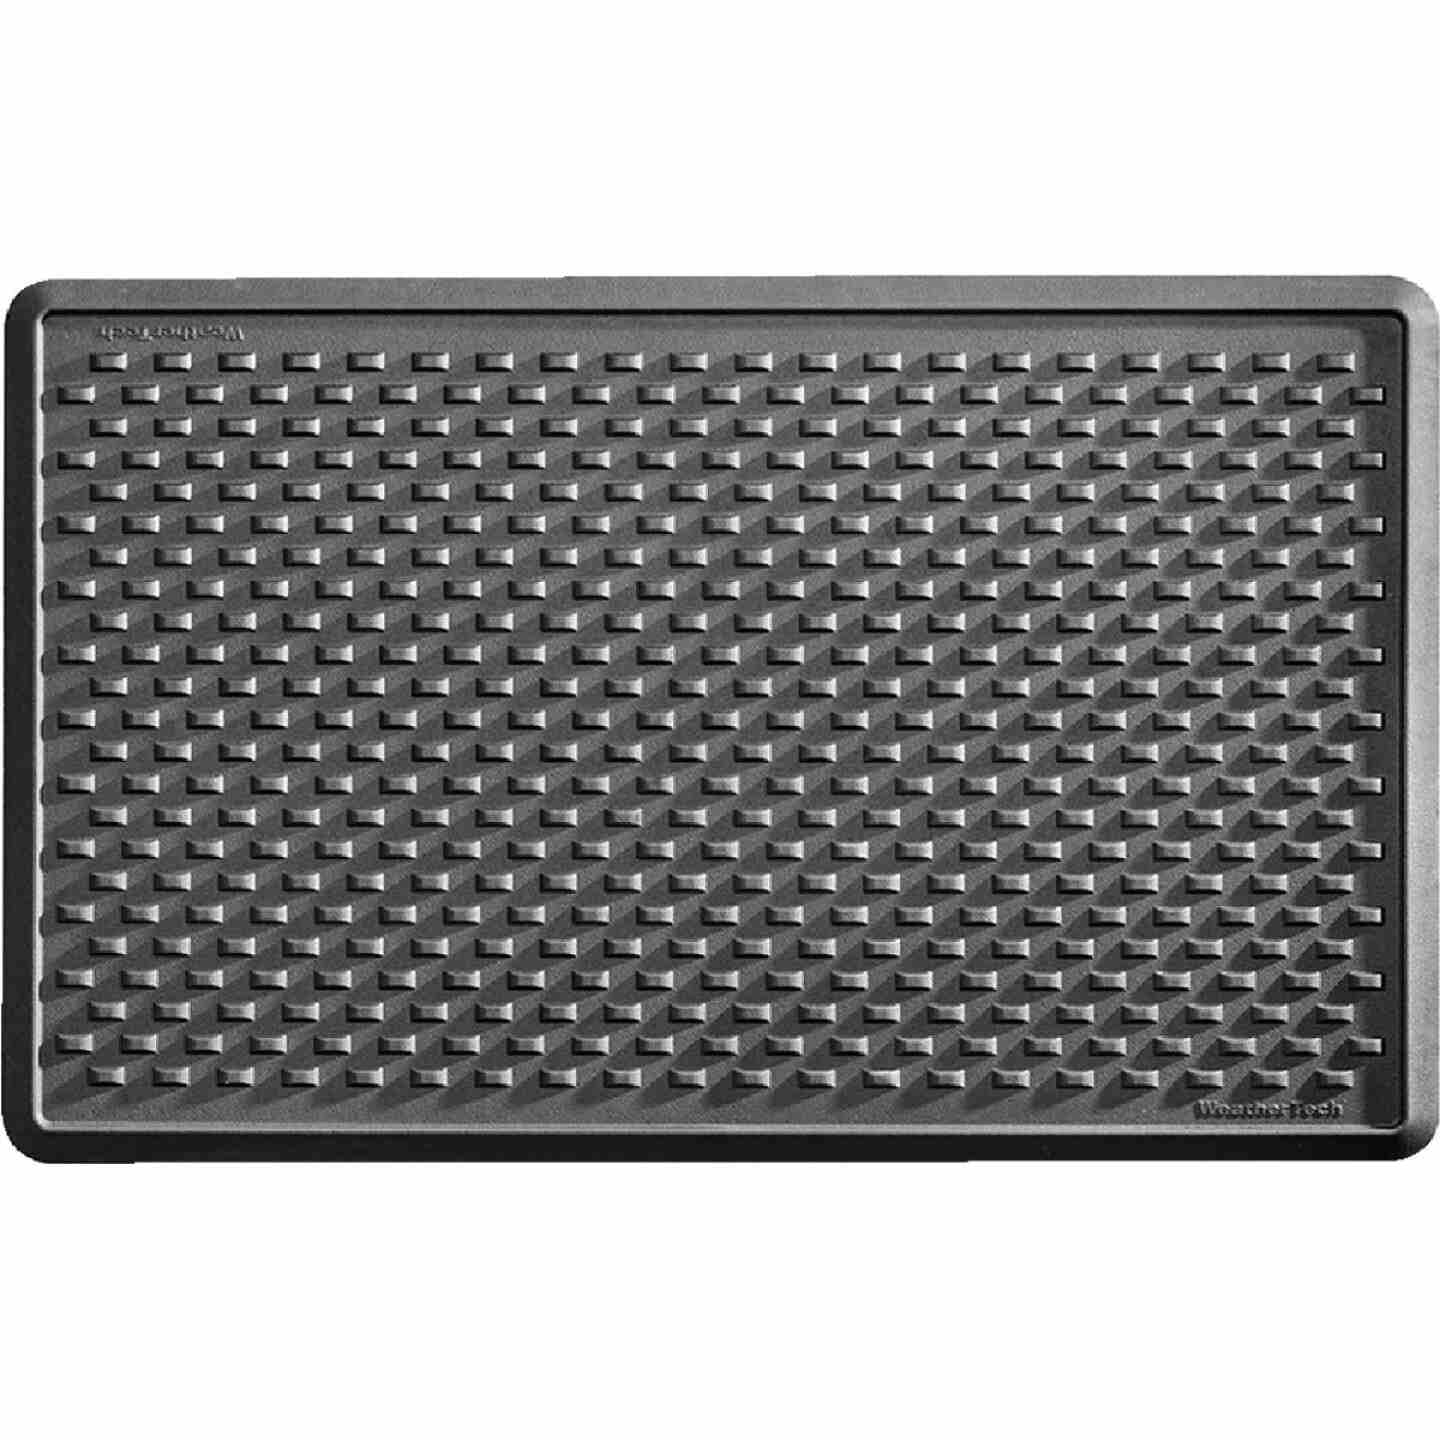 WeatherTech 24 In. x 39 In. Black Indoor Mat Image 1